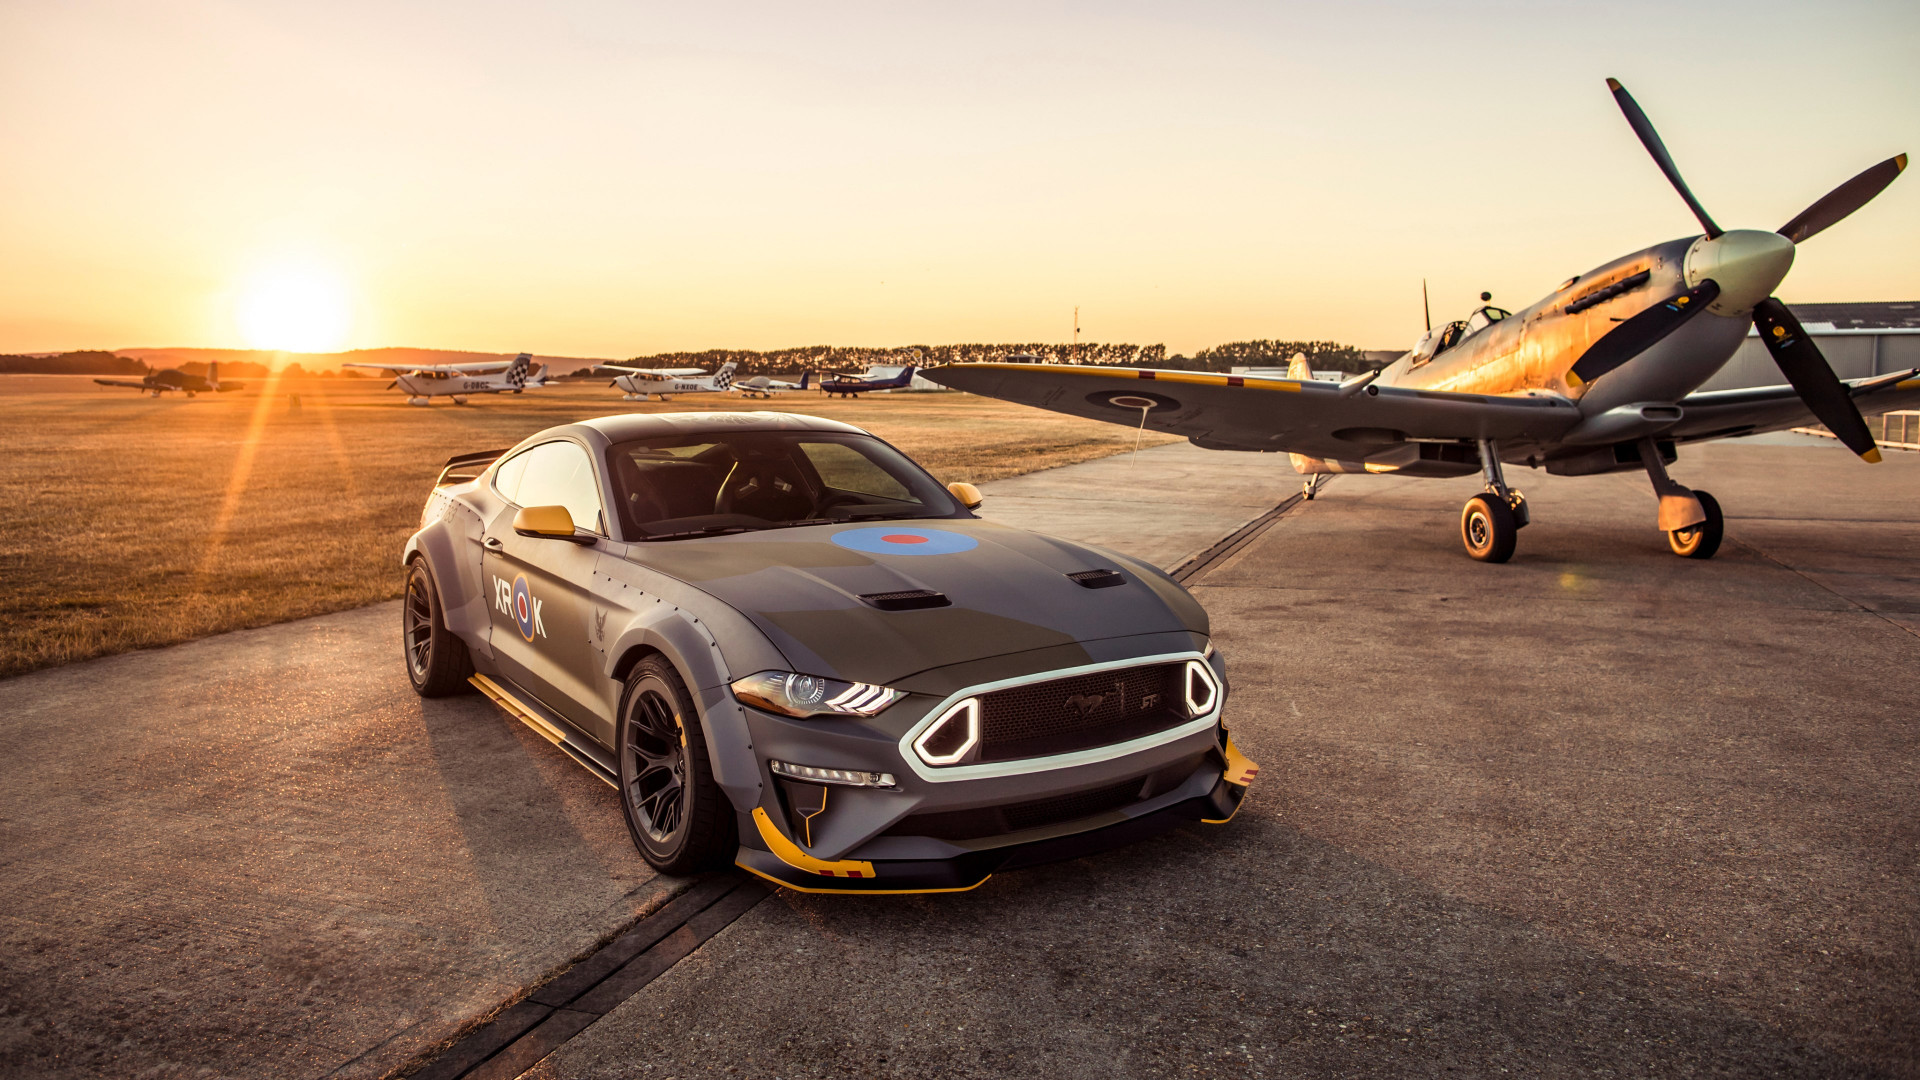 Ford Eagle Squadron Mustang GT | 1920x1080 wallpaper